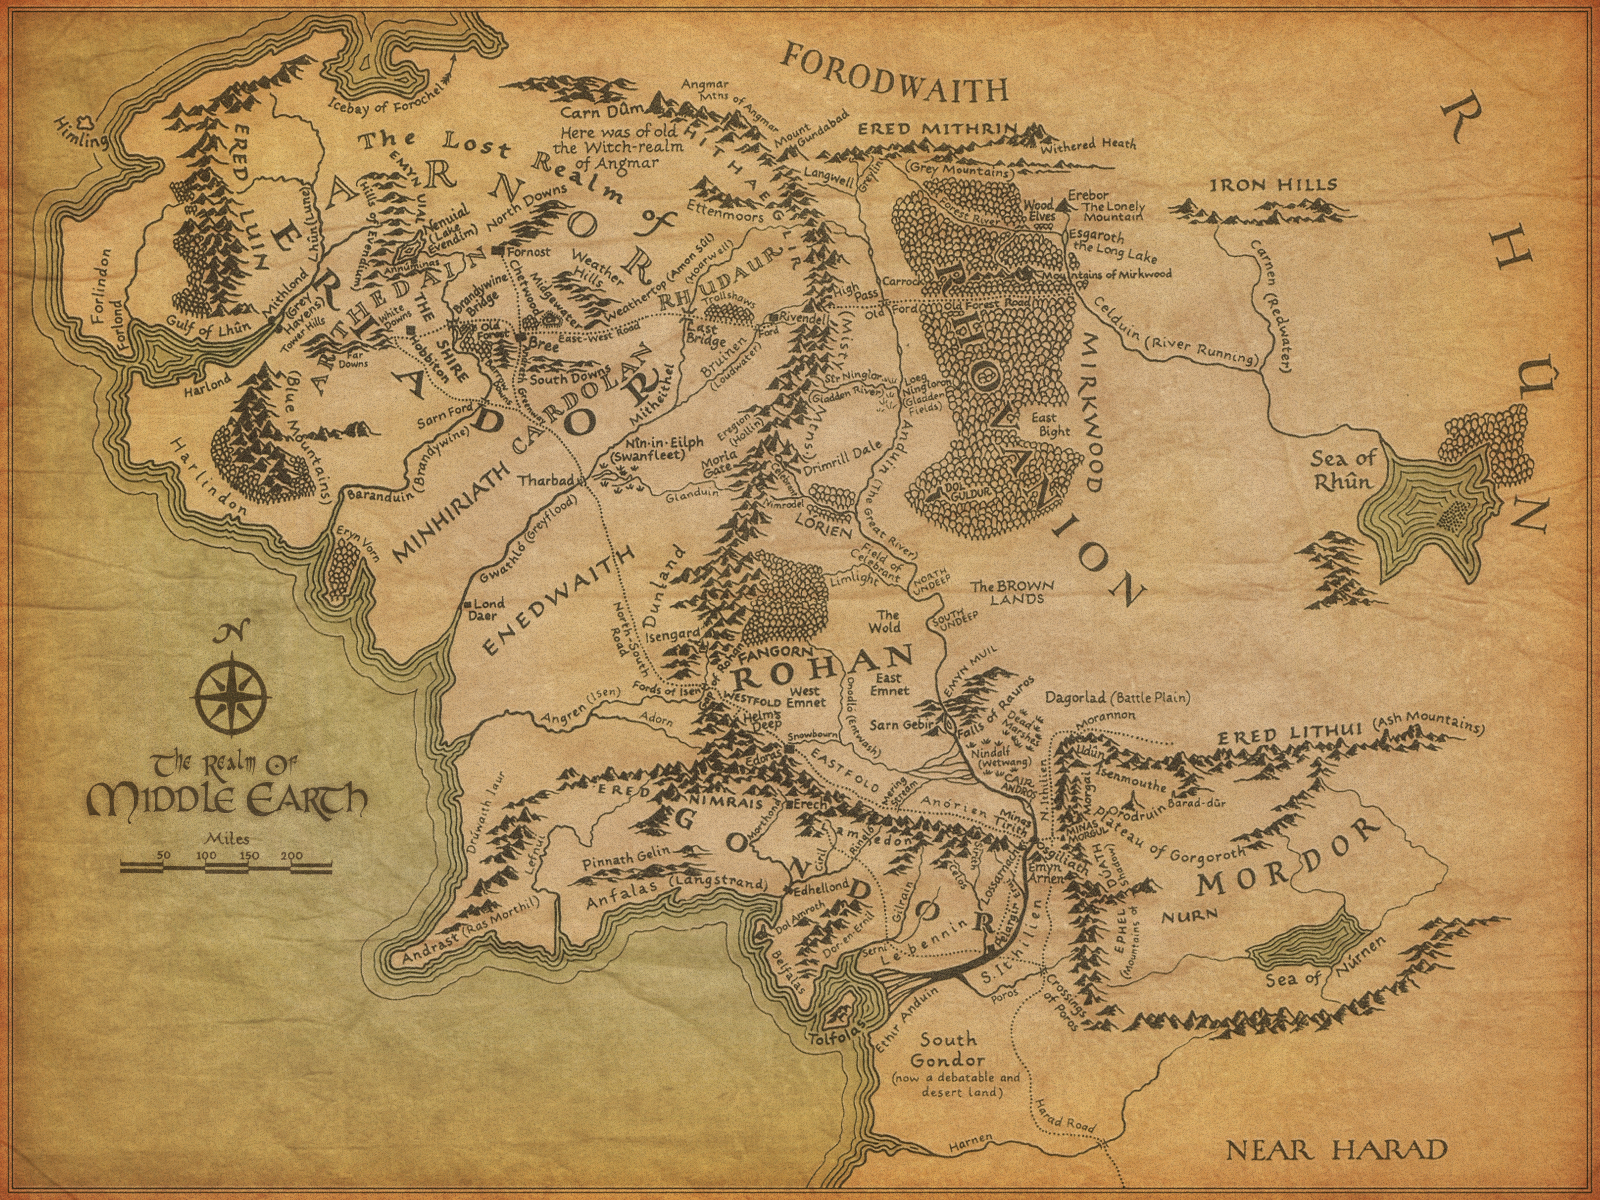 https://i1.wp.com/freeradical.me/wp-content/uploads/2012/12/middle-earth-map.jpg